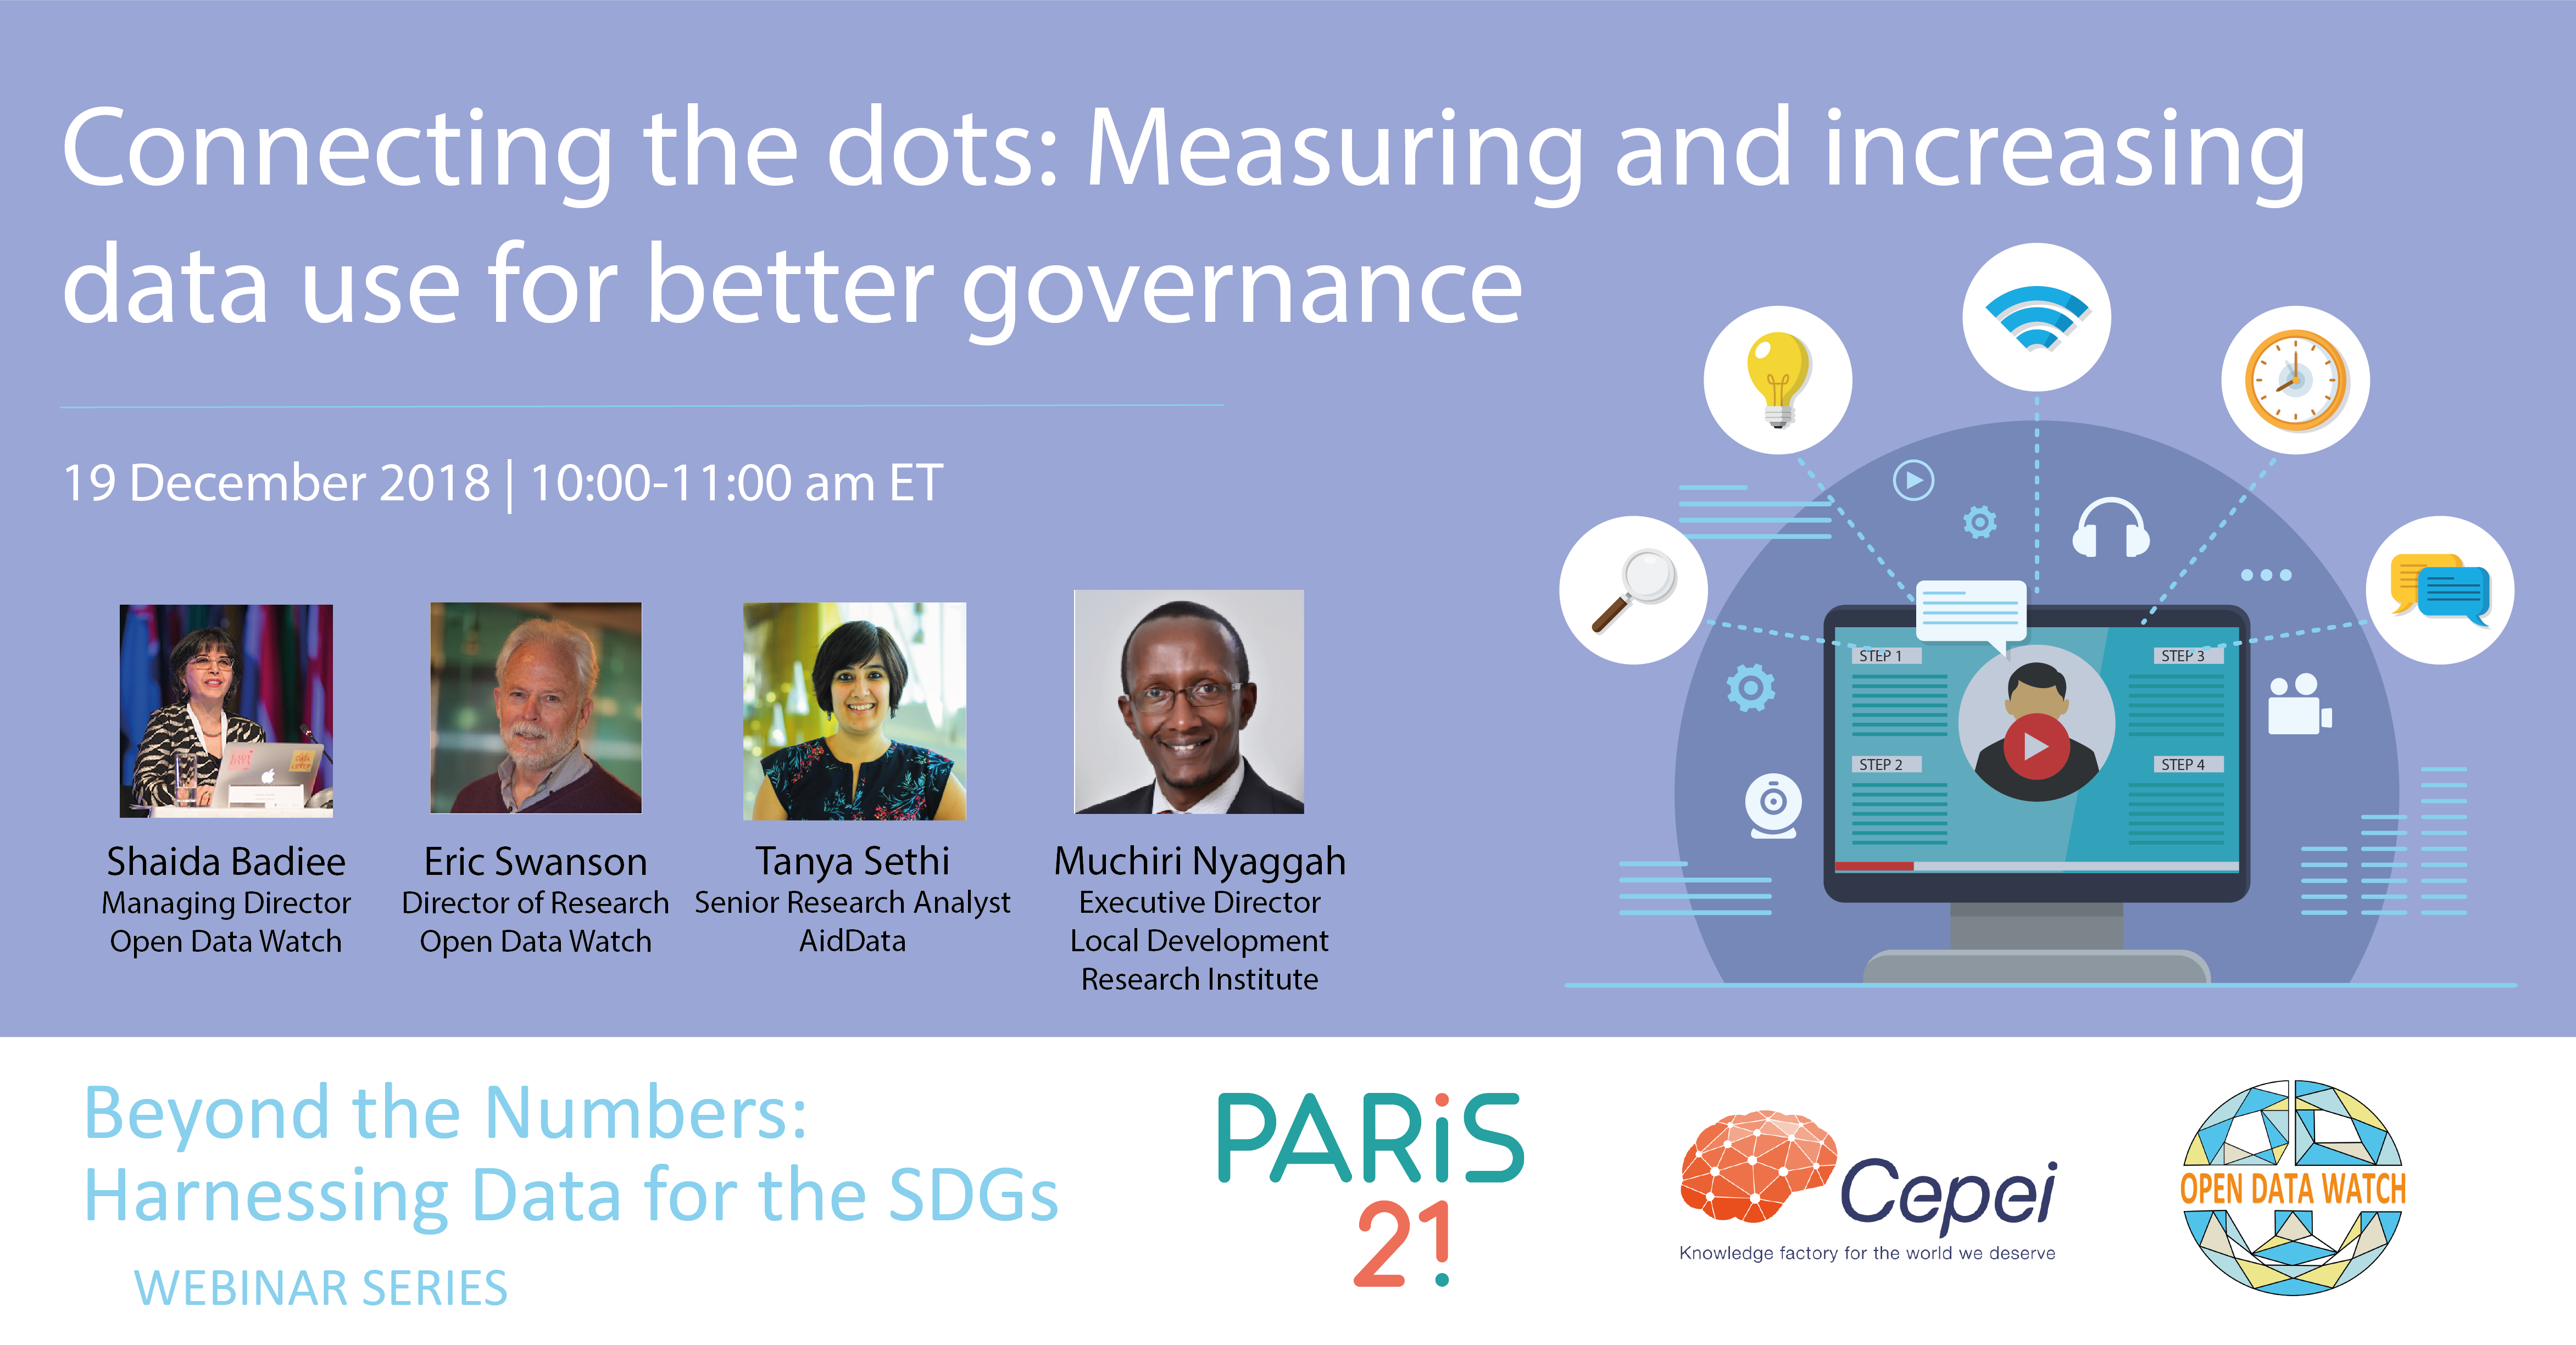 Connecting the dots:  Measuring and increasing data use for better governance